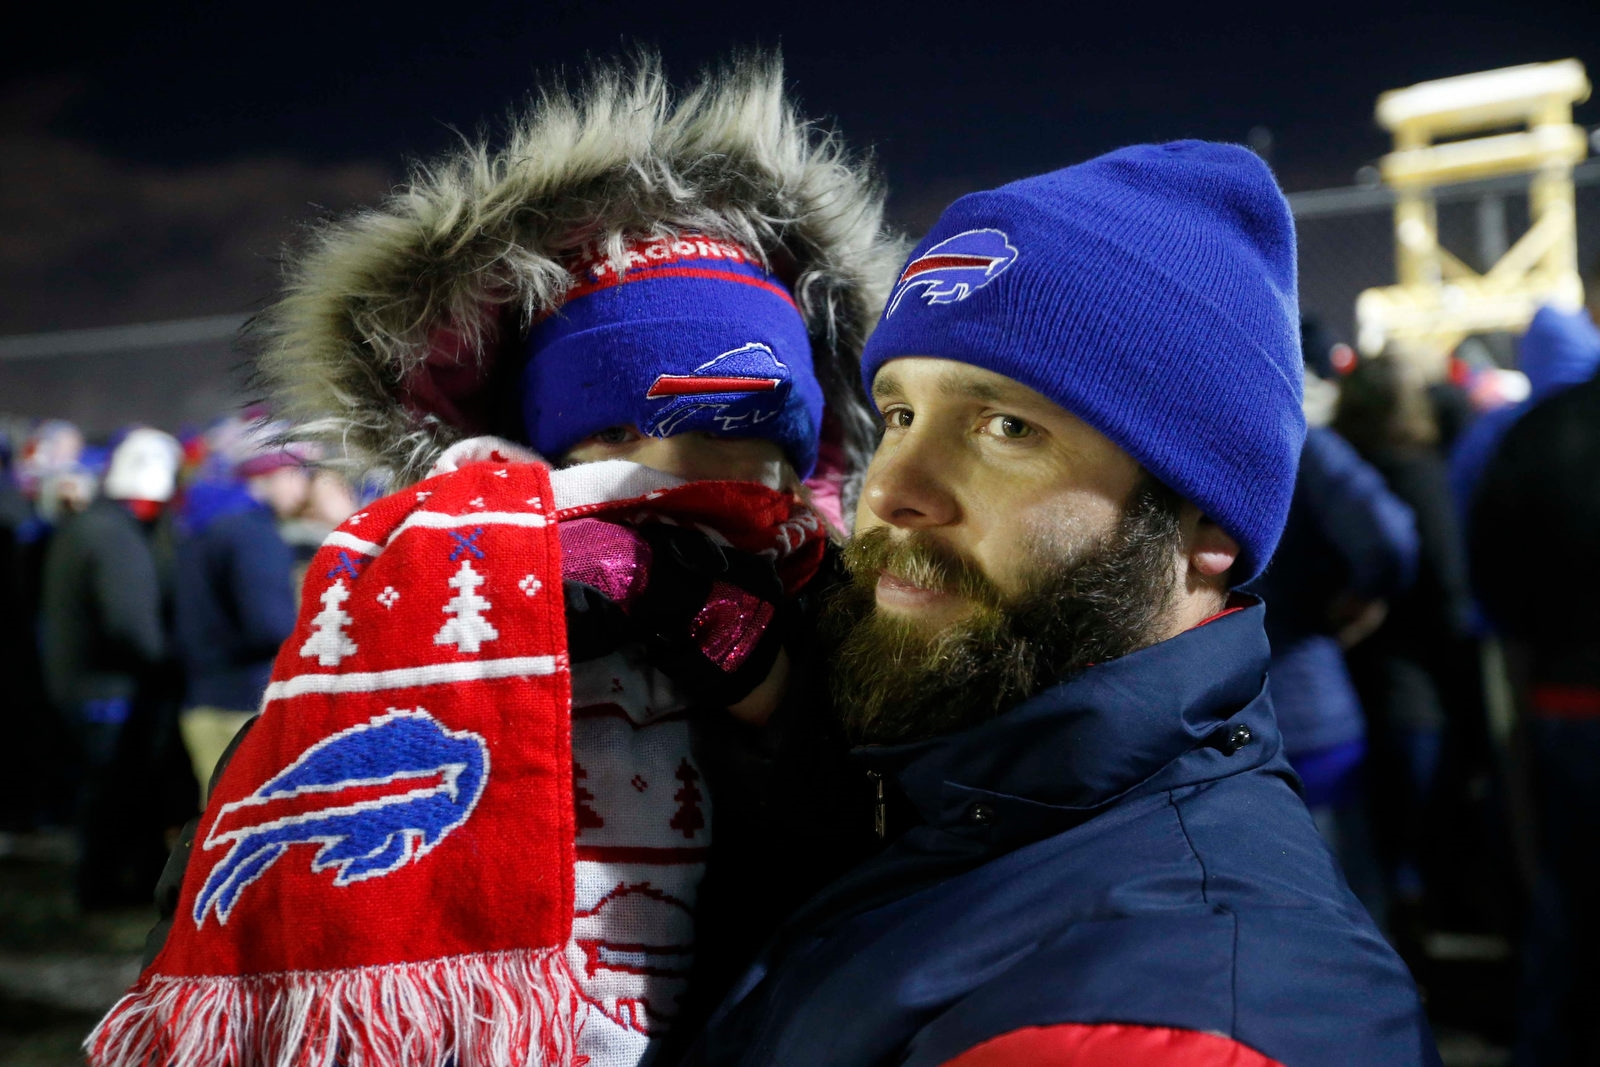 eed60fbc721d7c Brad Simcoe of Cheektowaga brought his 4-year-old daughter, Kaylee, to the  Buffalo International Airport as the Buffalo Bills come home as a playoff  team.